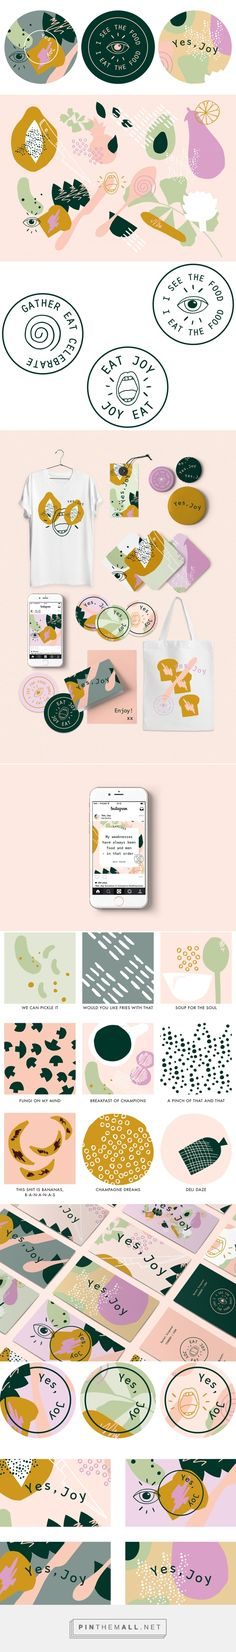 Yes, Joy Food Blogger and Caterer Branding by Lila Theodoros